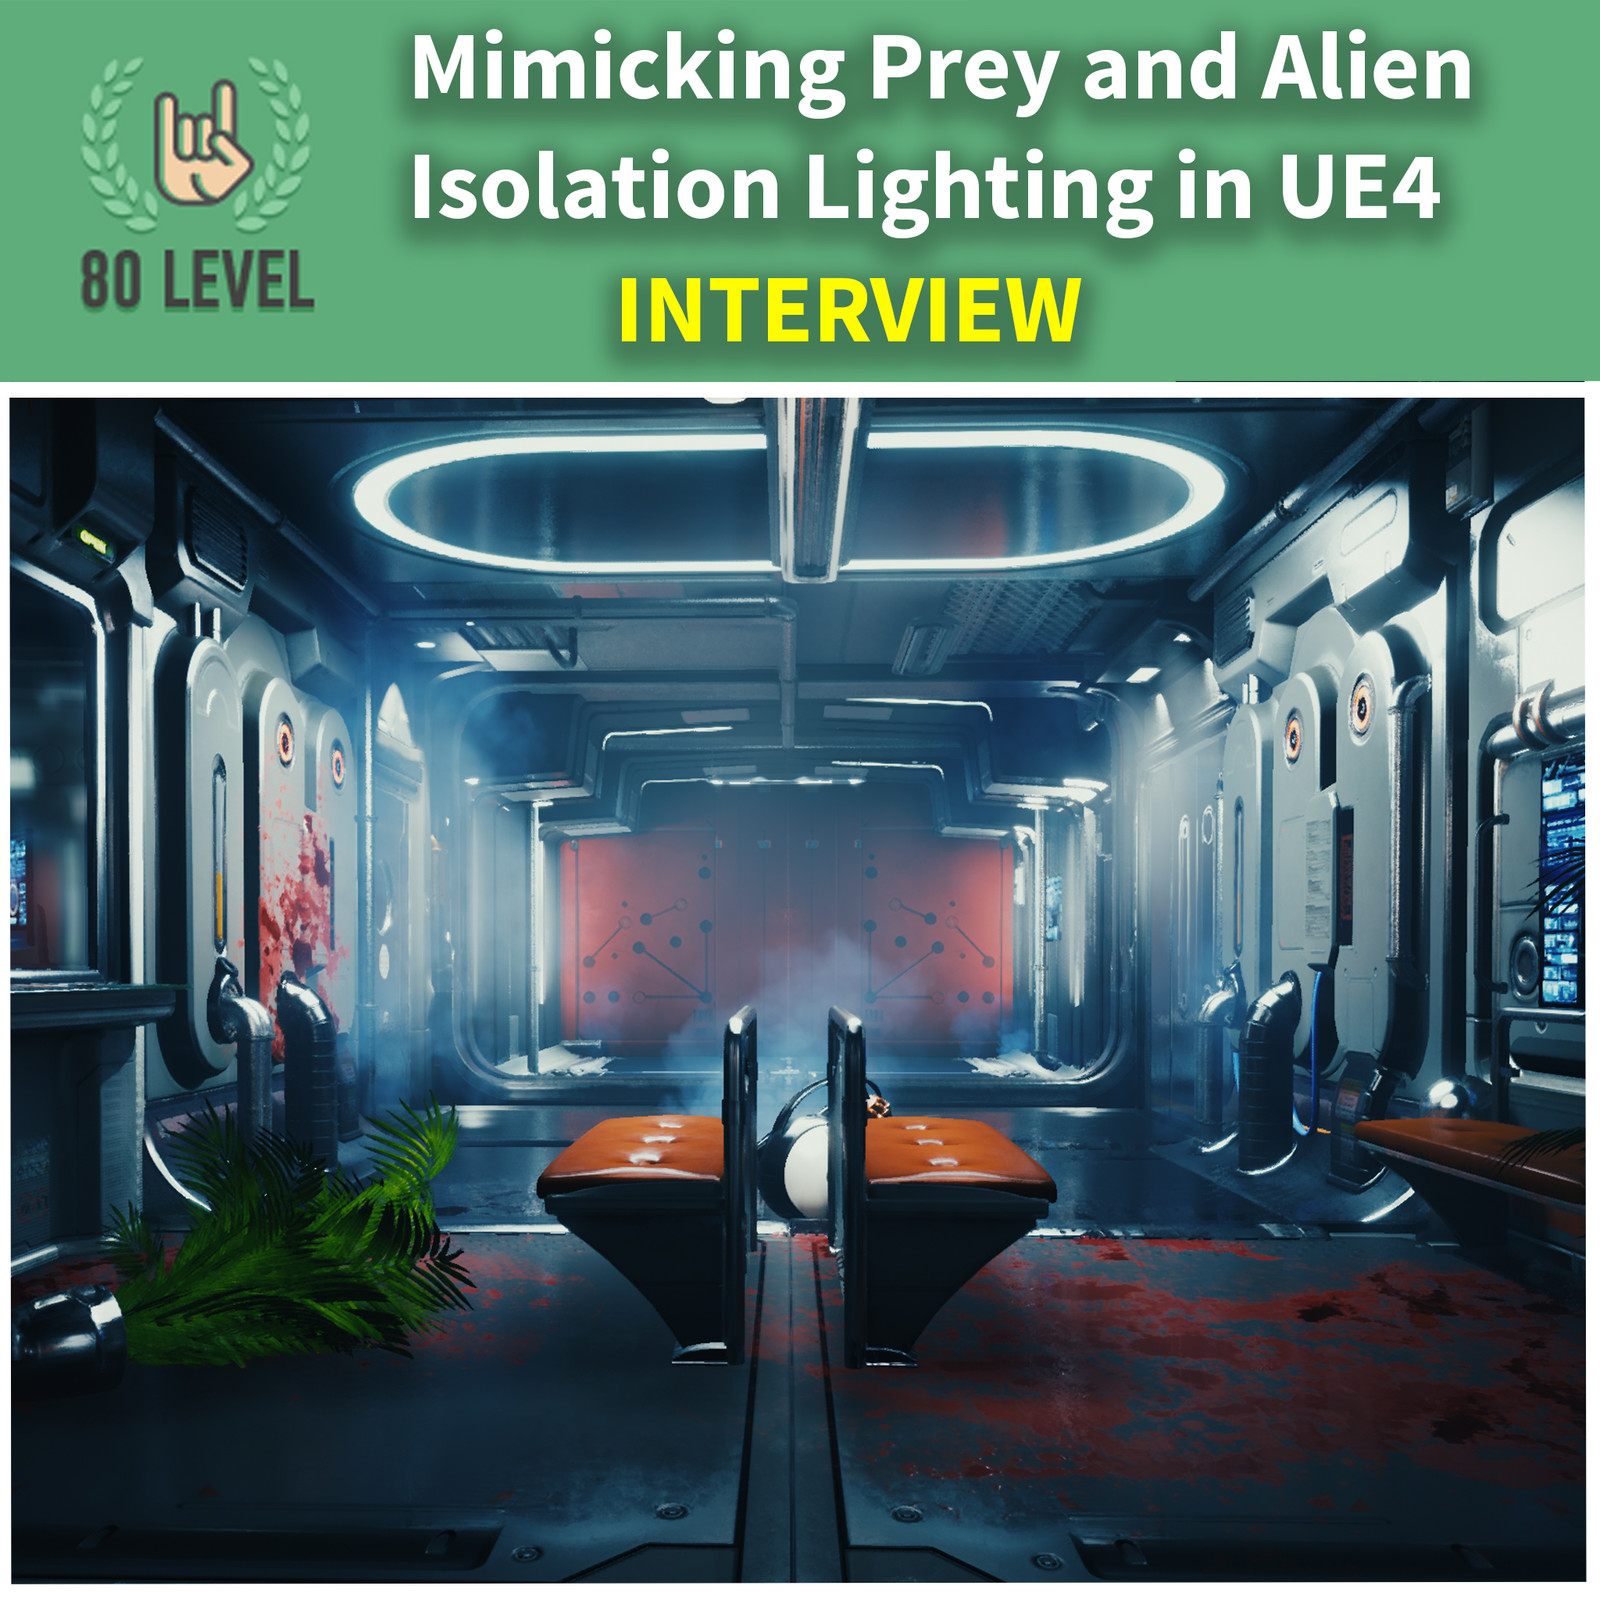 80.lv Article - Mimicking Prey and Alien Isolation Lighting in UE4